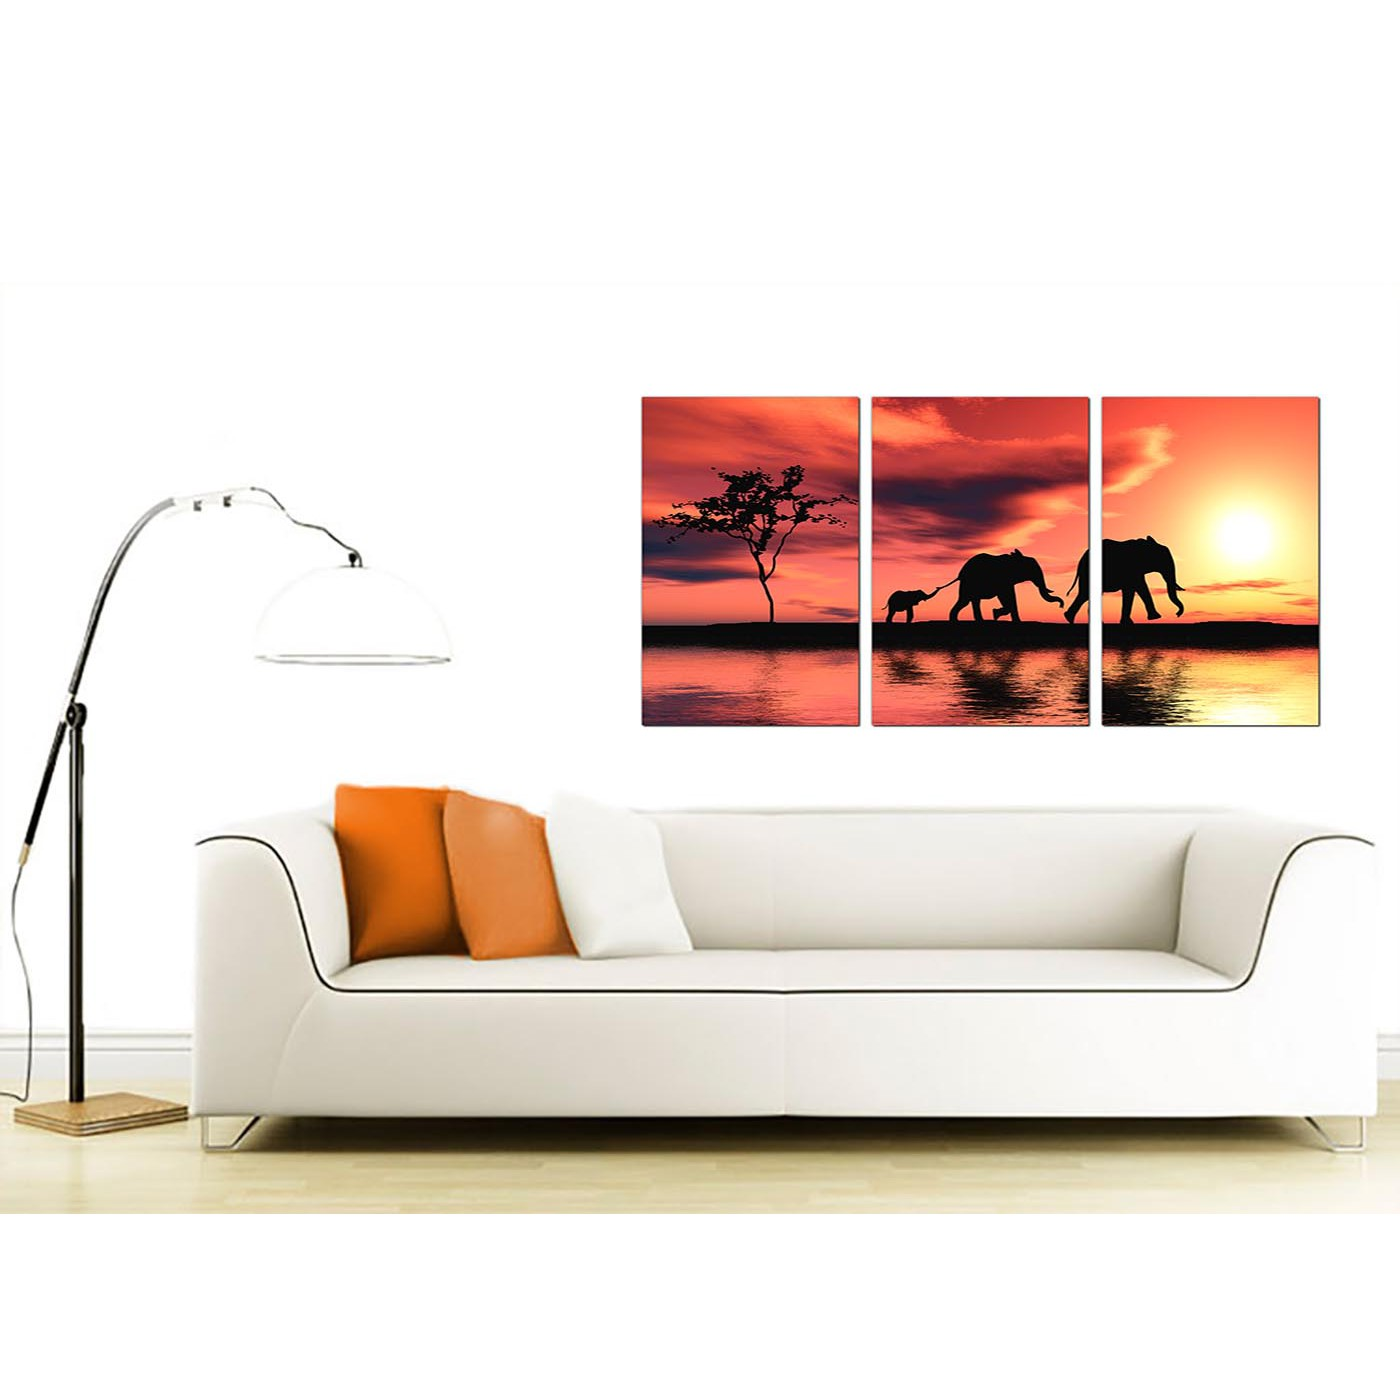 Elephants canvas prints set of 3 for your living room Canvas prints for living room